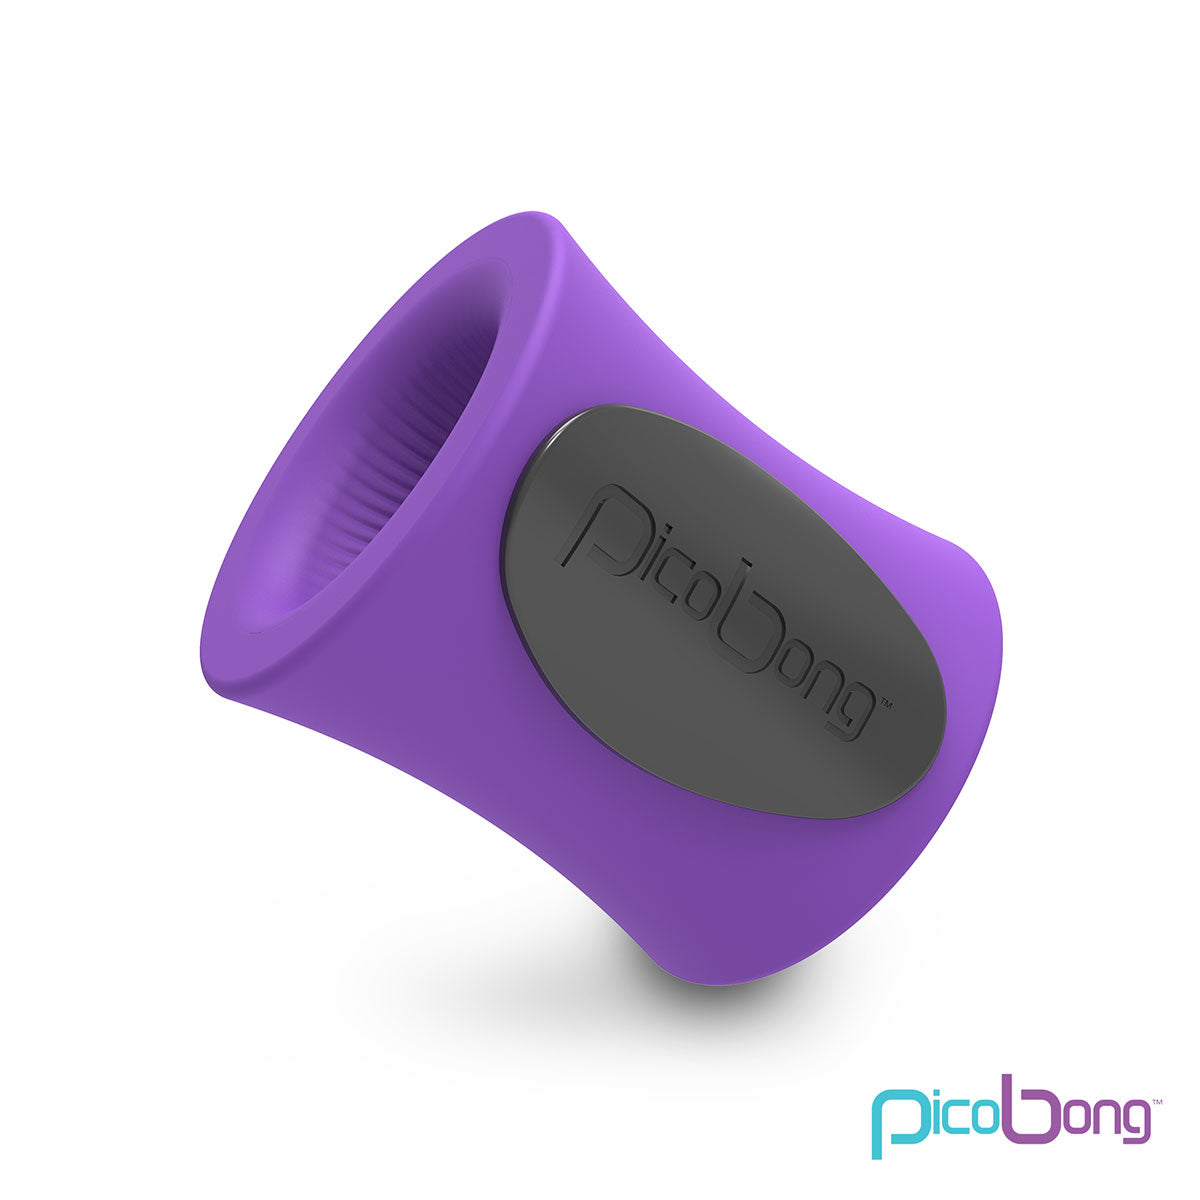 PicoBong Remoji Blowhole App-Controlled Vibrating Masturbation Cup Purple